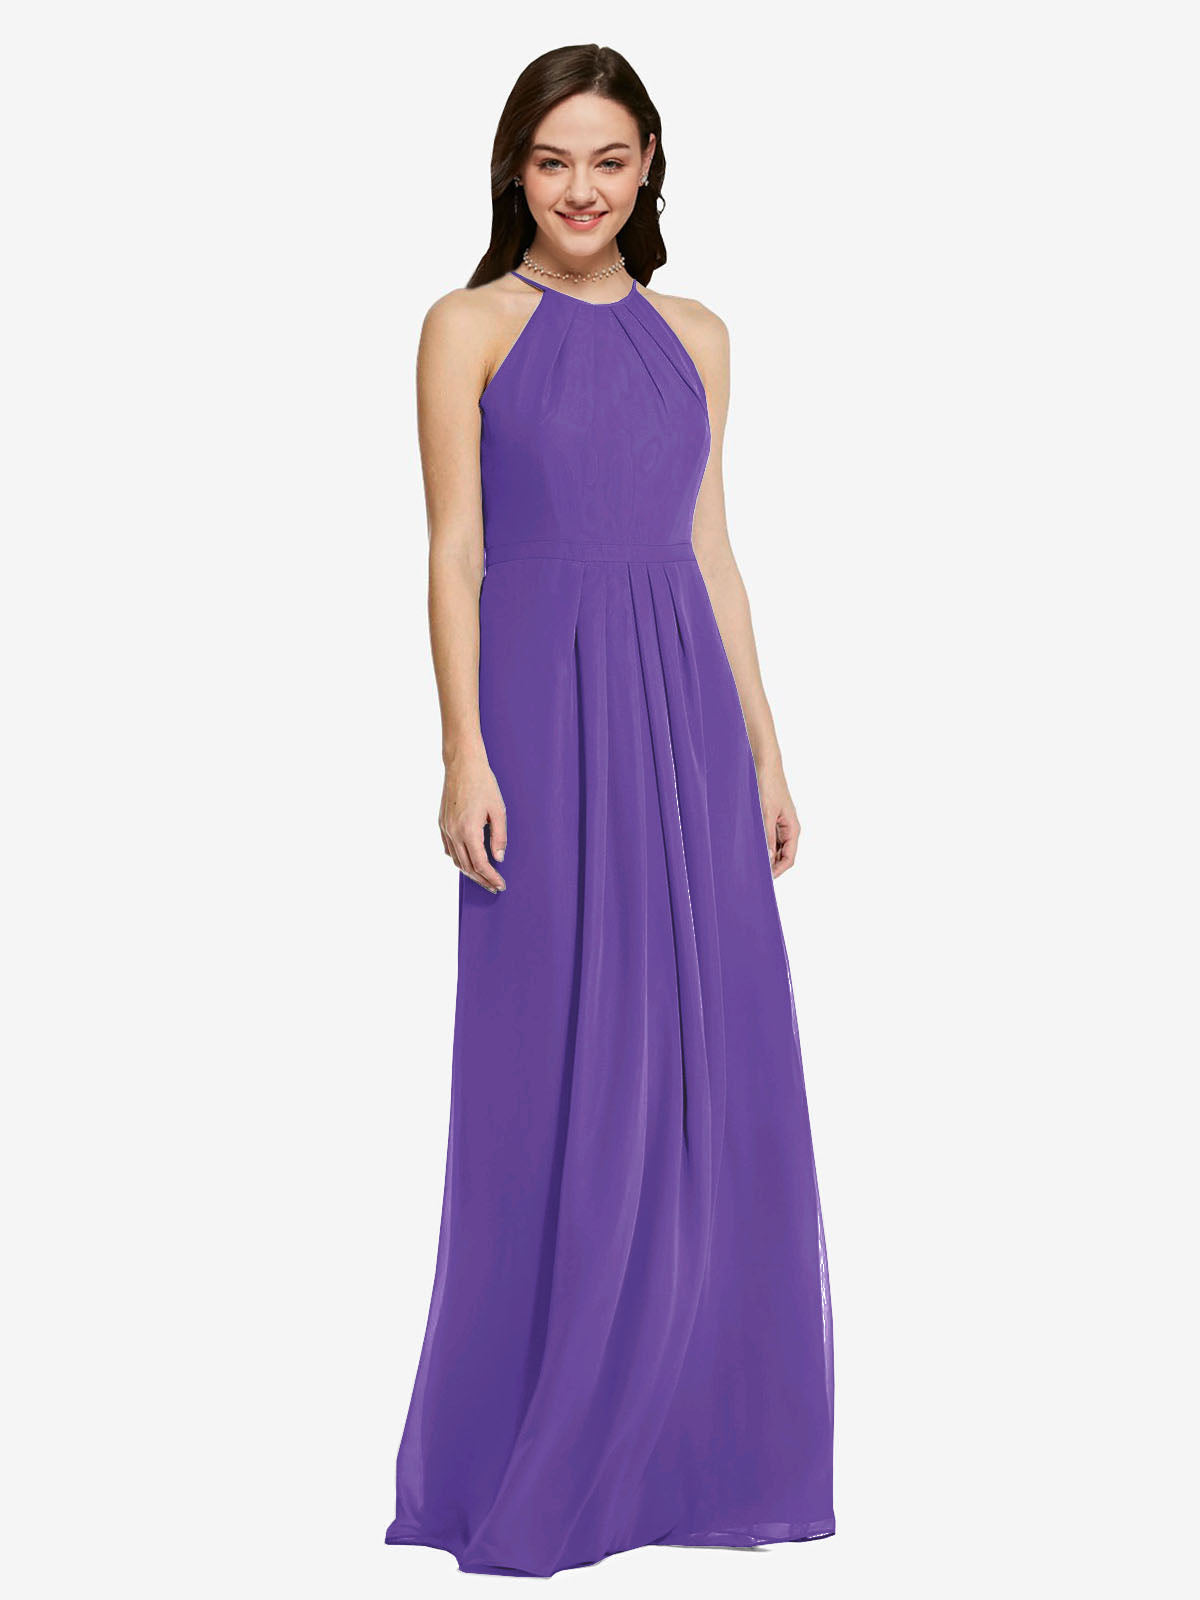 Long Sheath High Neck Halter Sleeveless Purple Chiffon Bridesmaid Dress Koloti